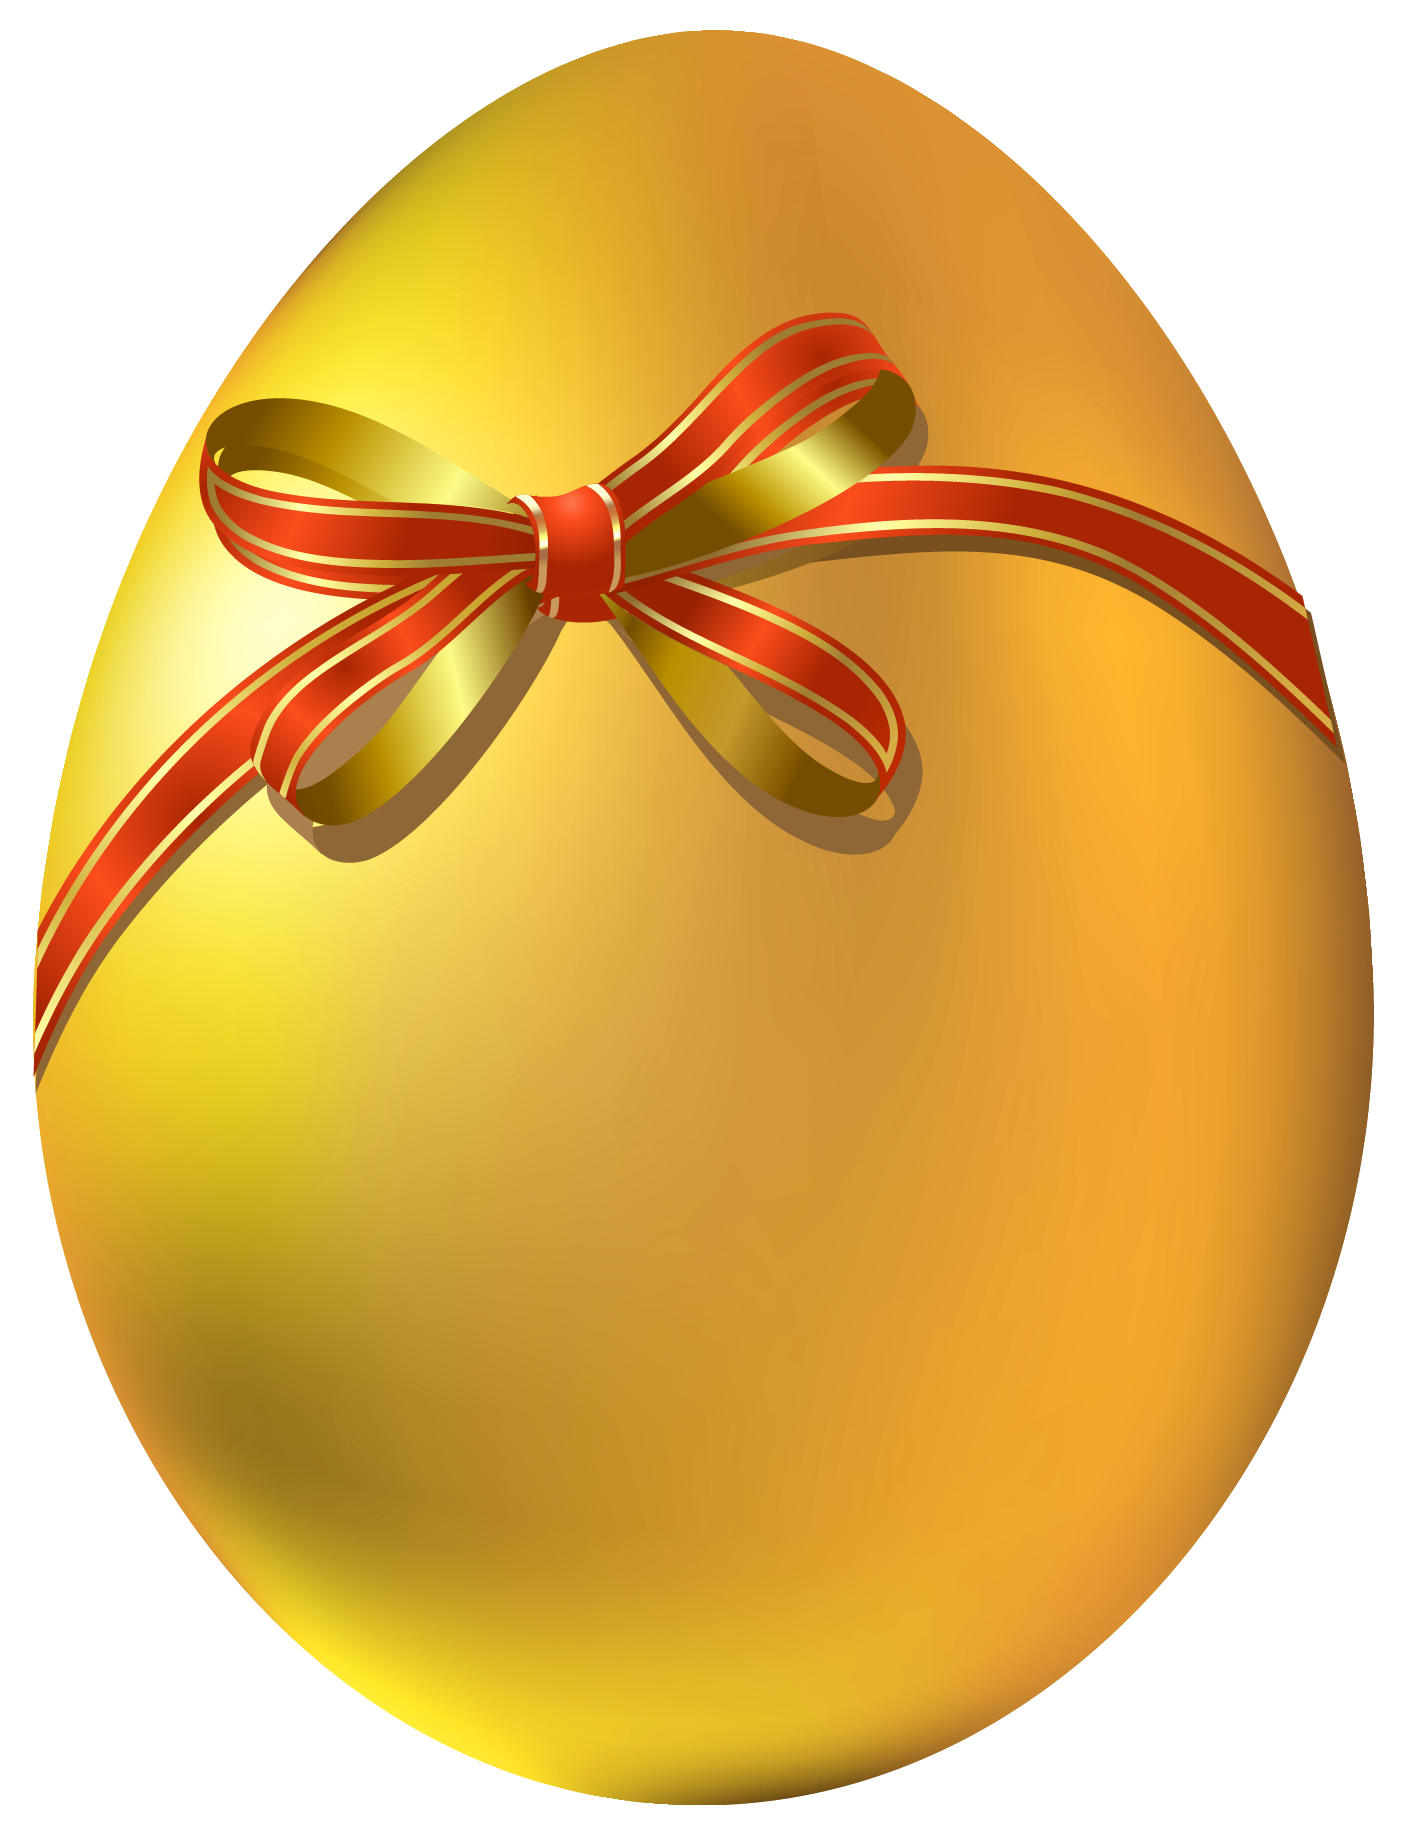 Real easter eggs png. Gold egg with red